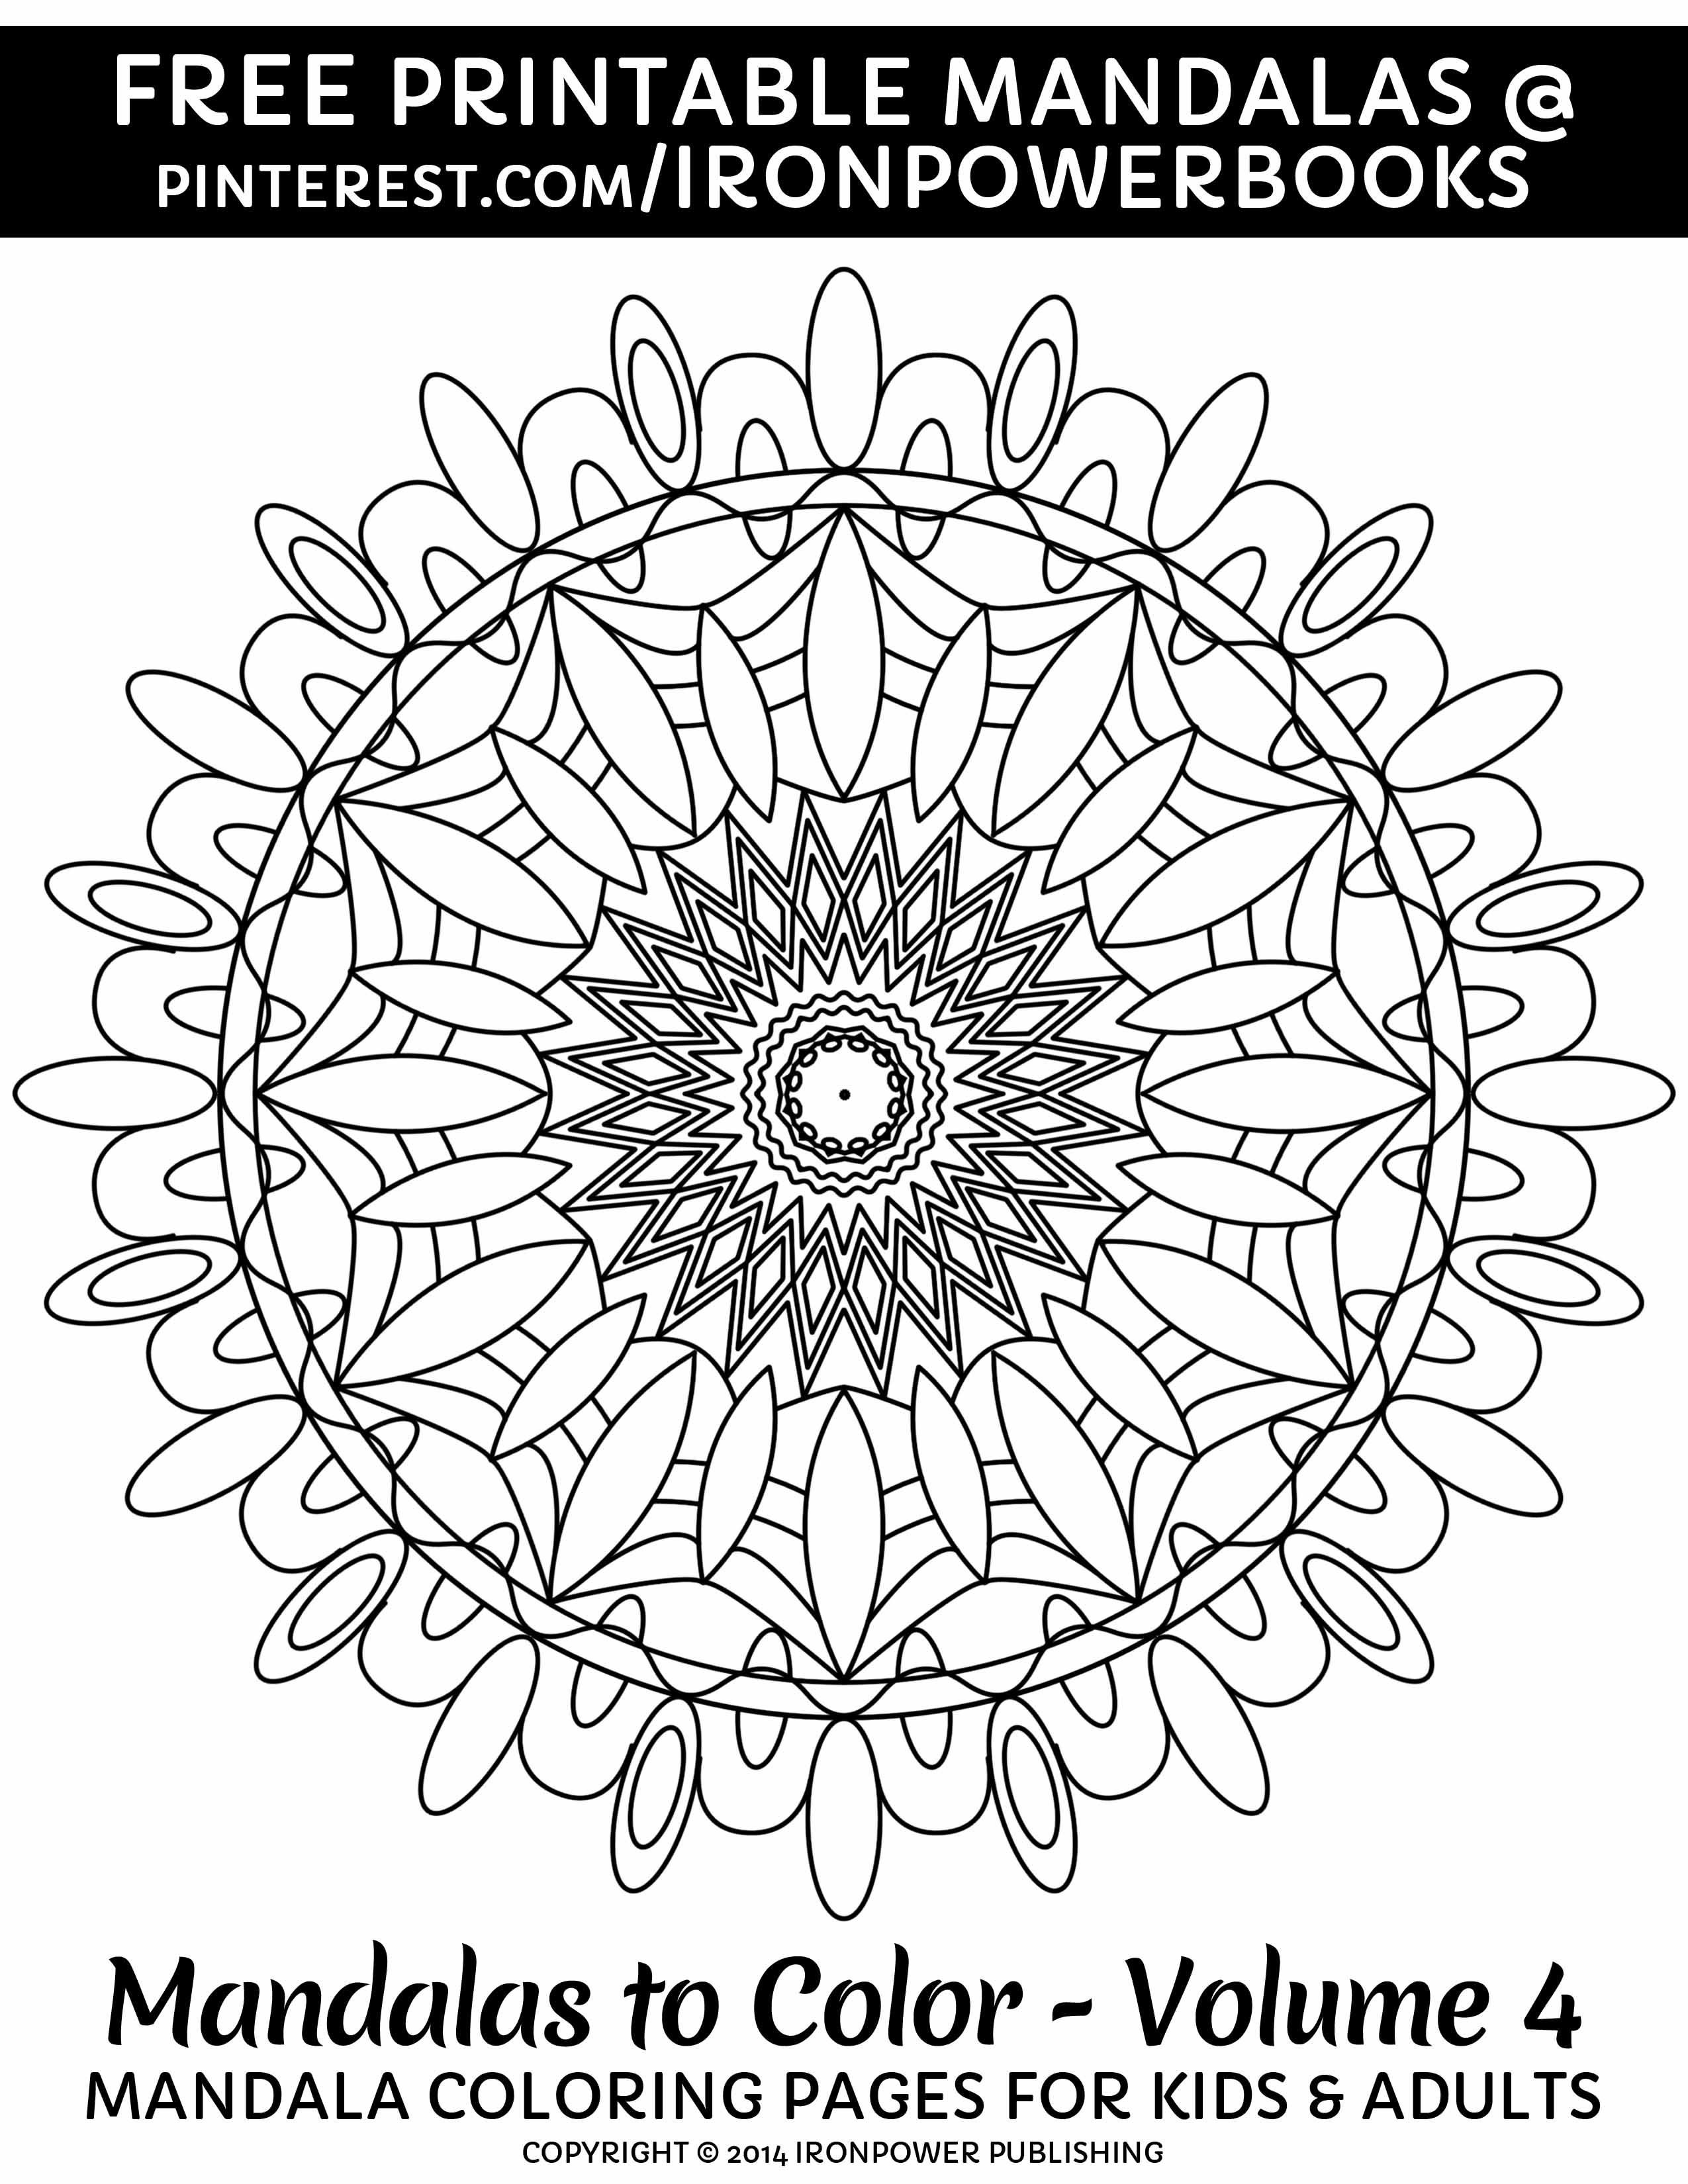 Free Coloring Page For Kids And Adults Please Use Freely For Personal Non Commercial Use Visit Mandala Coloring Pages Mandala Coloring Books Coloring Books